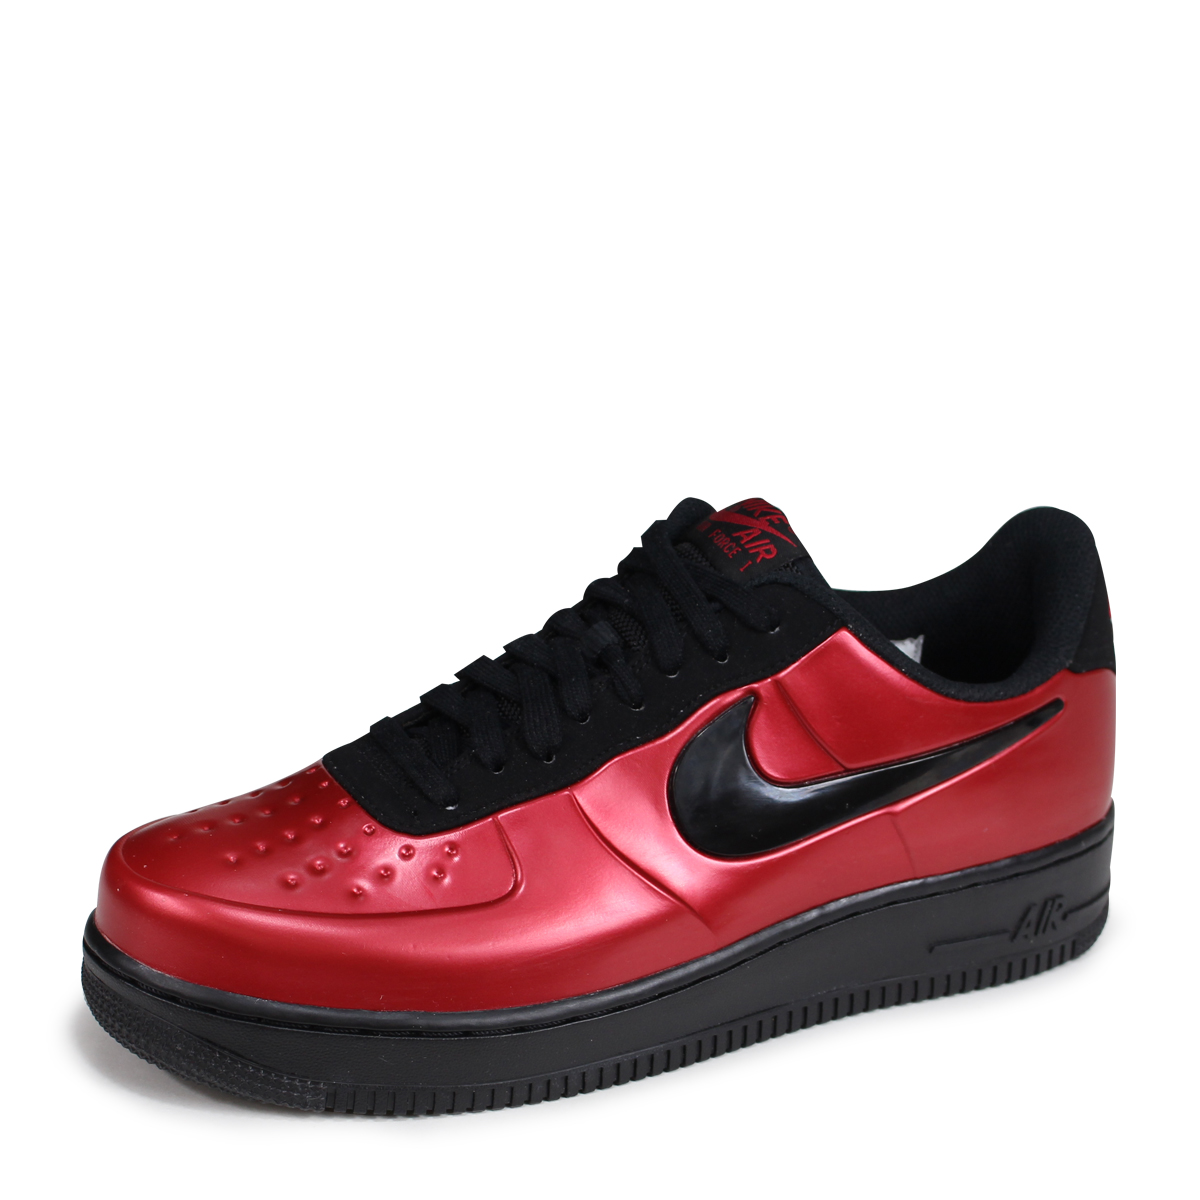 fcb3fc98c8a9 ALLSPORTS  NIKE AIR FORCE 1 FOAMPOSITE PRO CUP AF1 Nike air force 1 ...